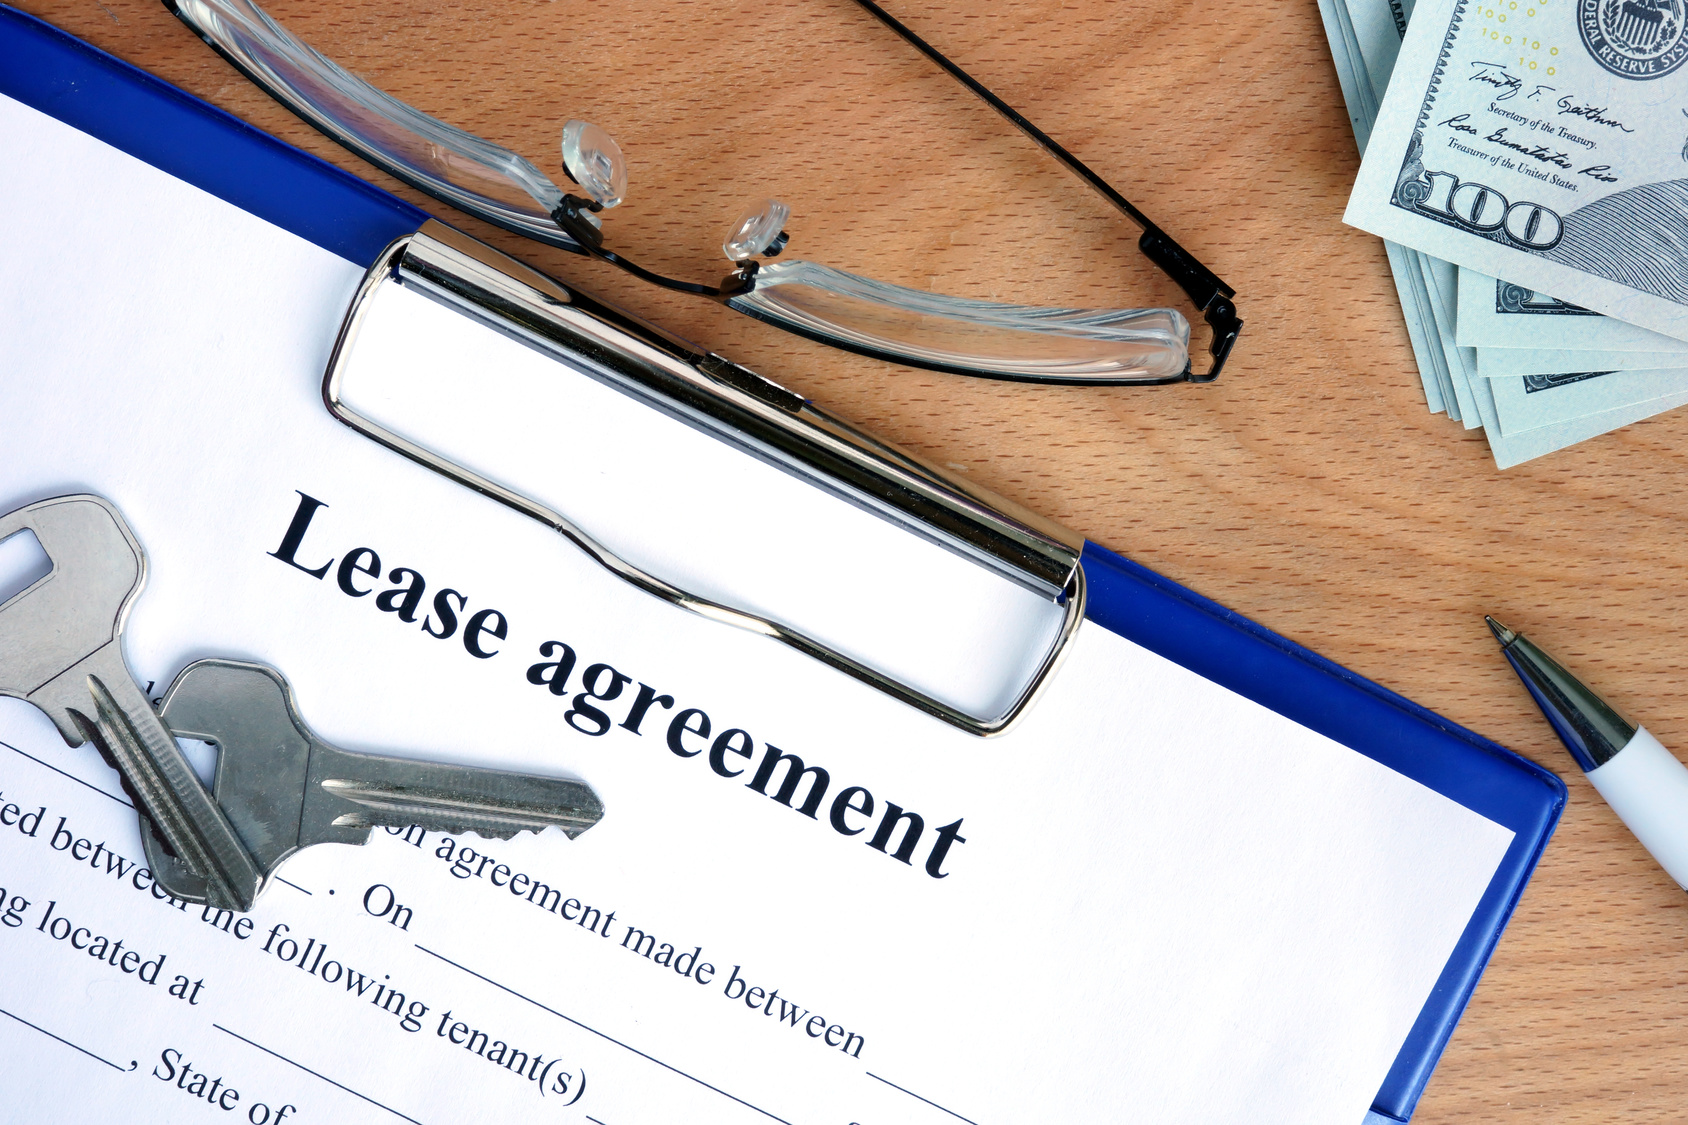 Lease agreement document with money on a wood background